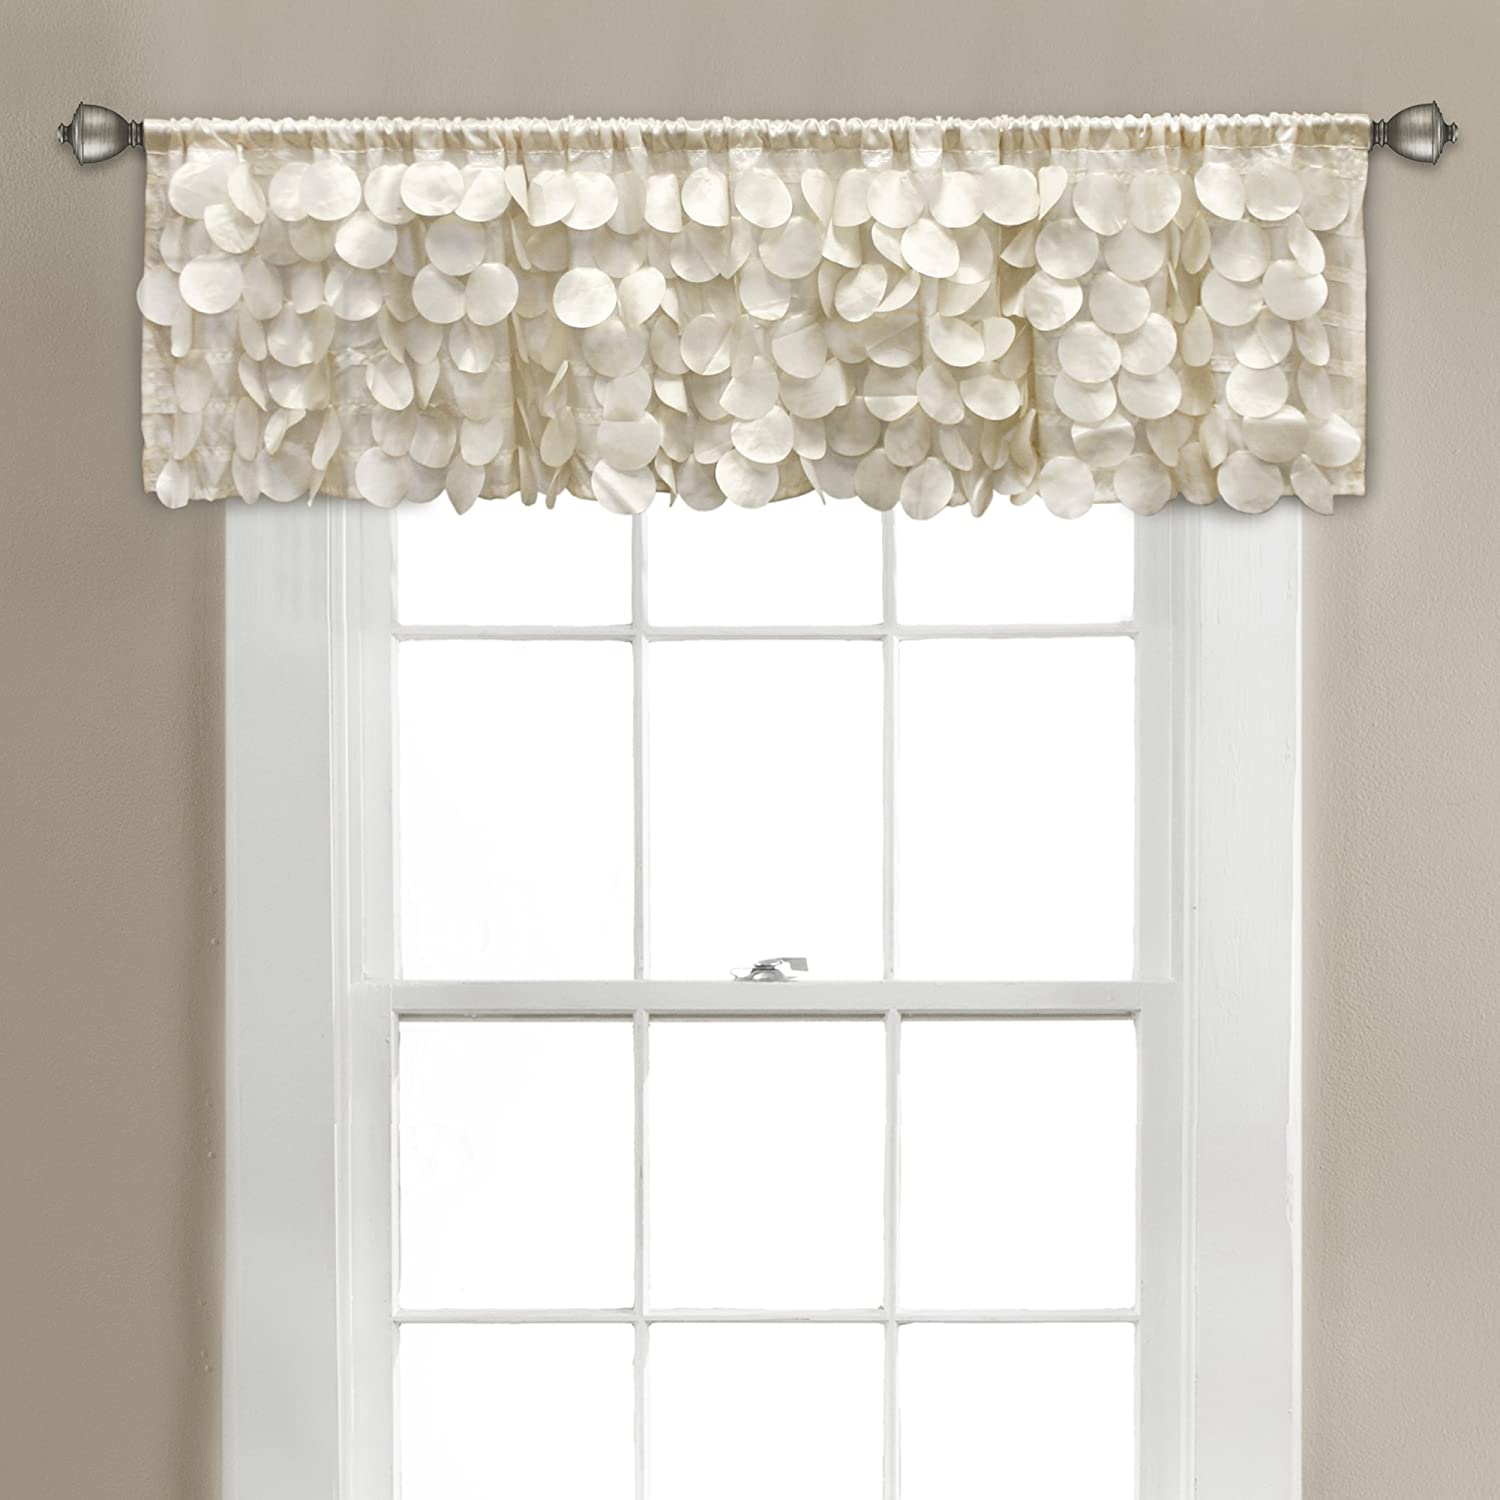 weekend homemade hgtv projects valance construct design a valances decorating treatments window